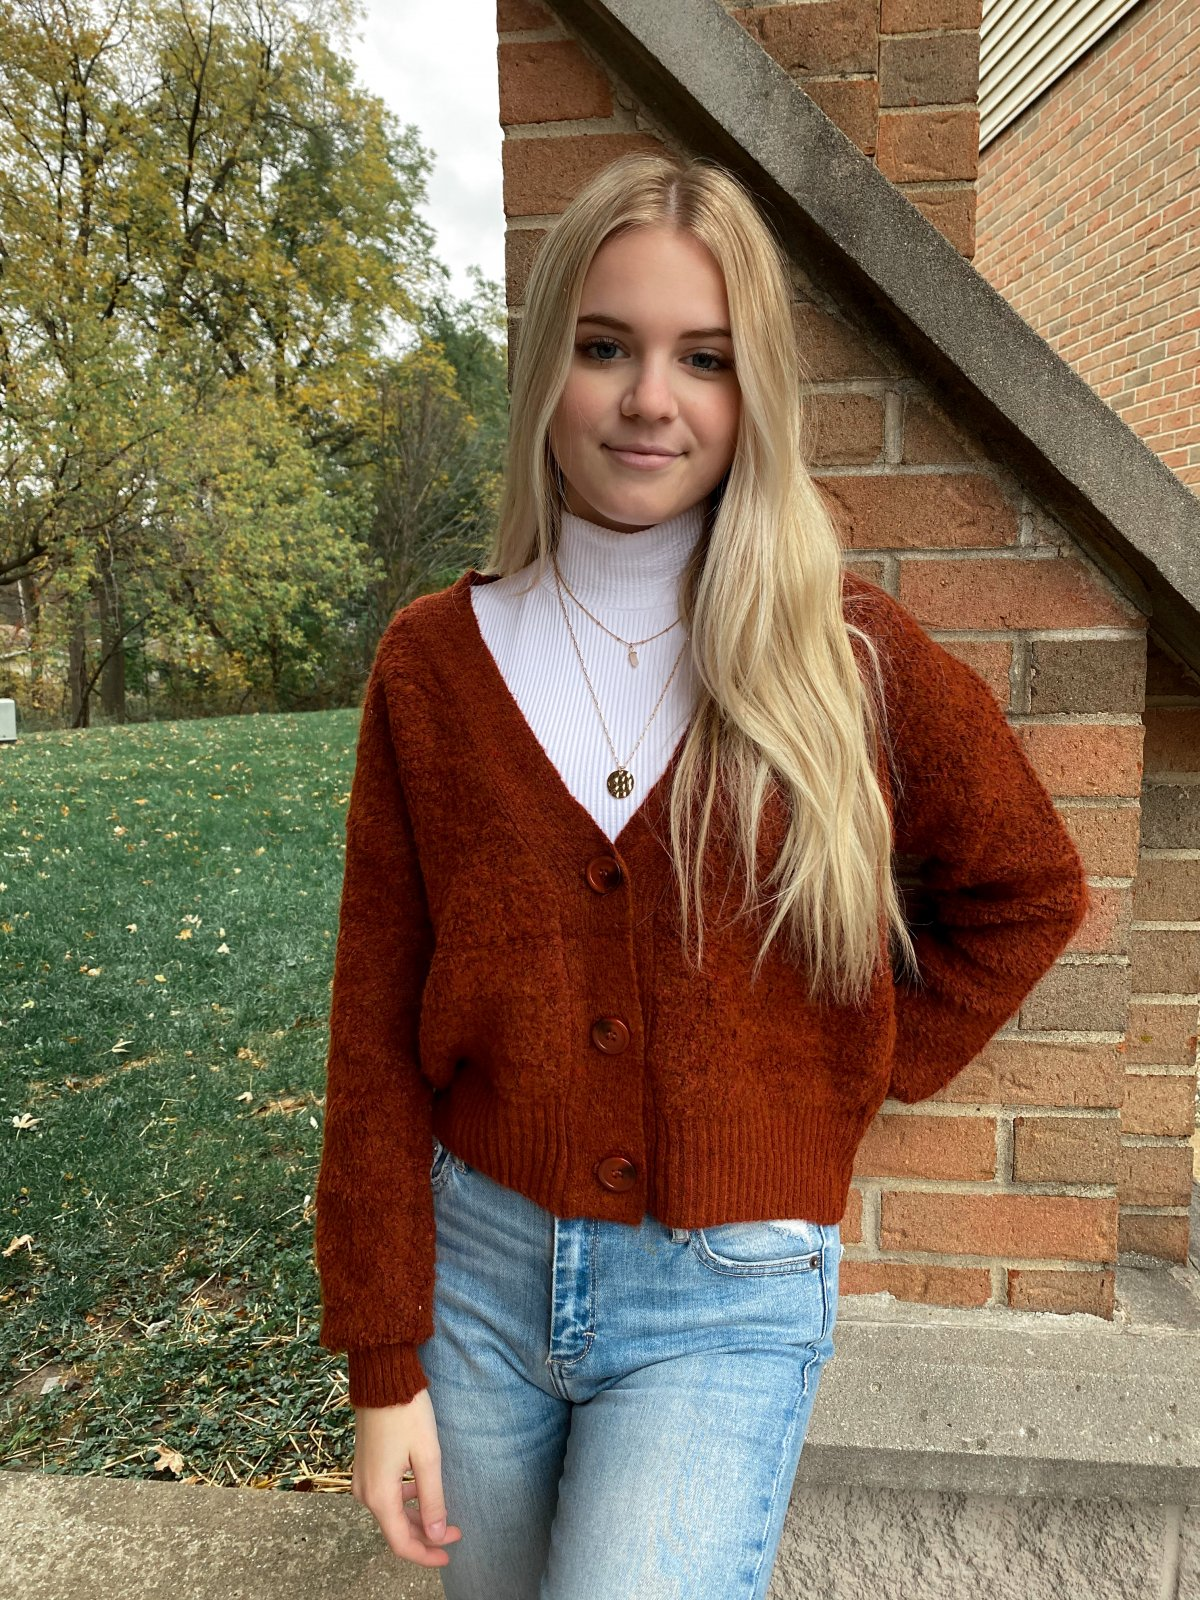 PM Rust Boucle L/S Btn Up V Crop Cardigan Sweater